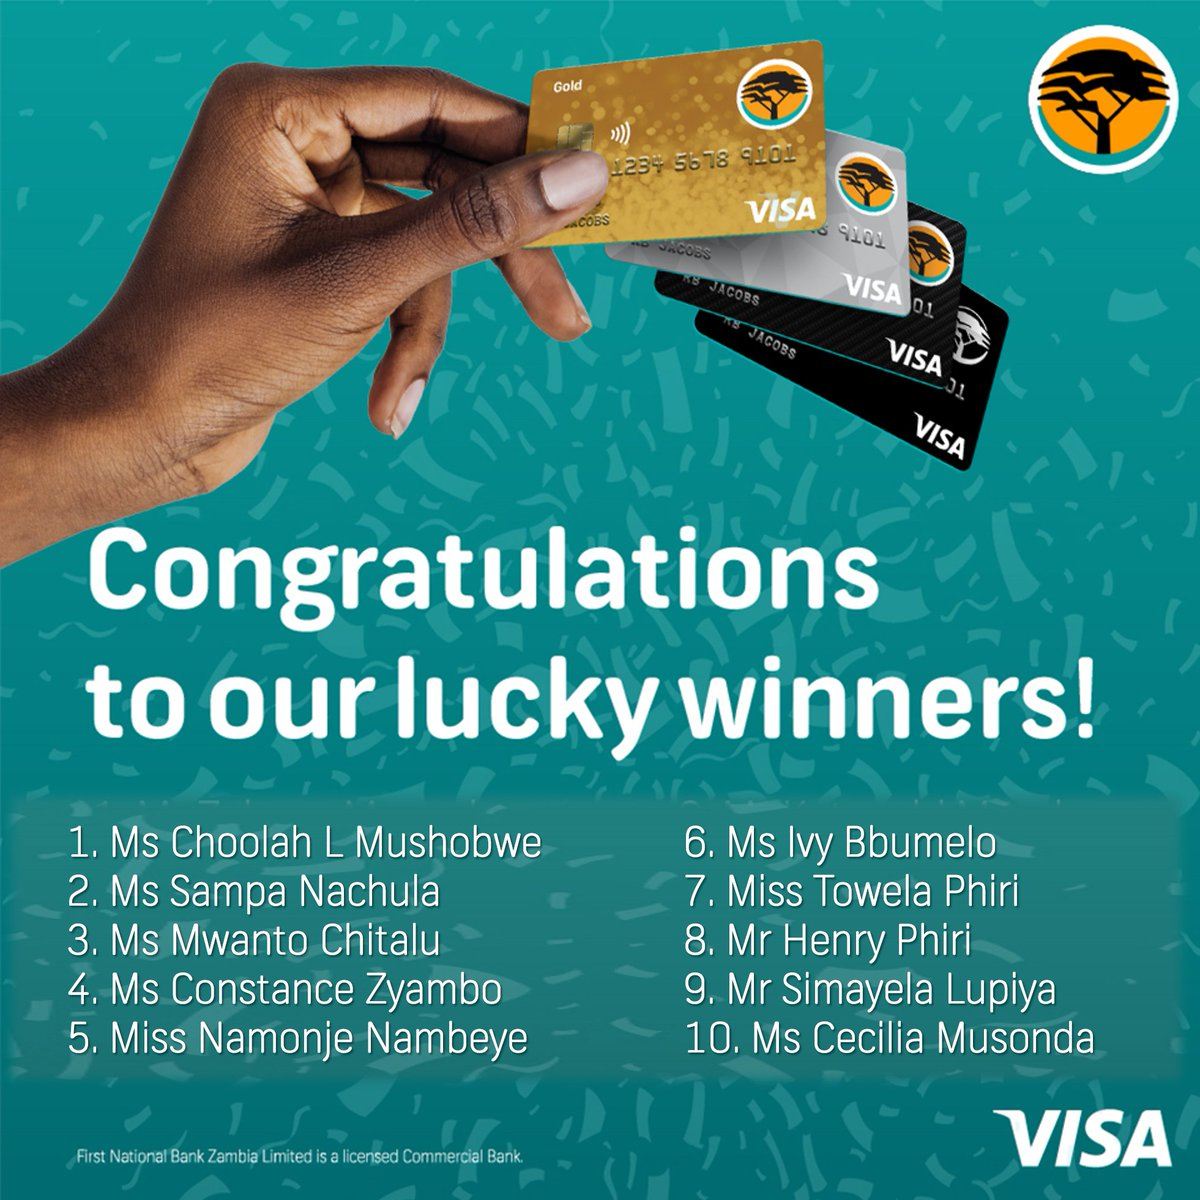 Congratulations to our 2nd draw prize winners in the FNB swipe and win promotion. Each winner receives one months' worth of groceries. Swipe to pay using your FNB Visa debit card to get rewarded in cash. T's & C's apply. https://t.co/dT4IOdo4Ad